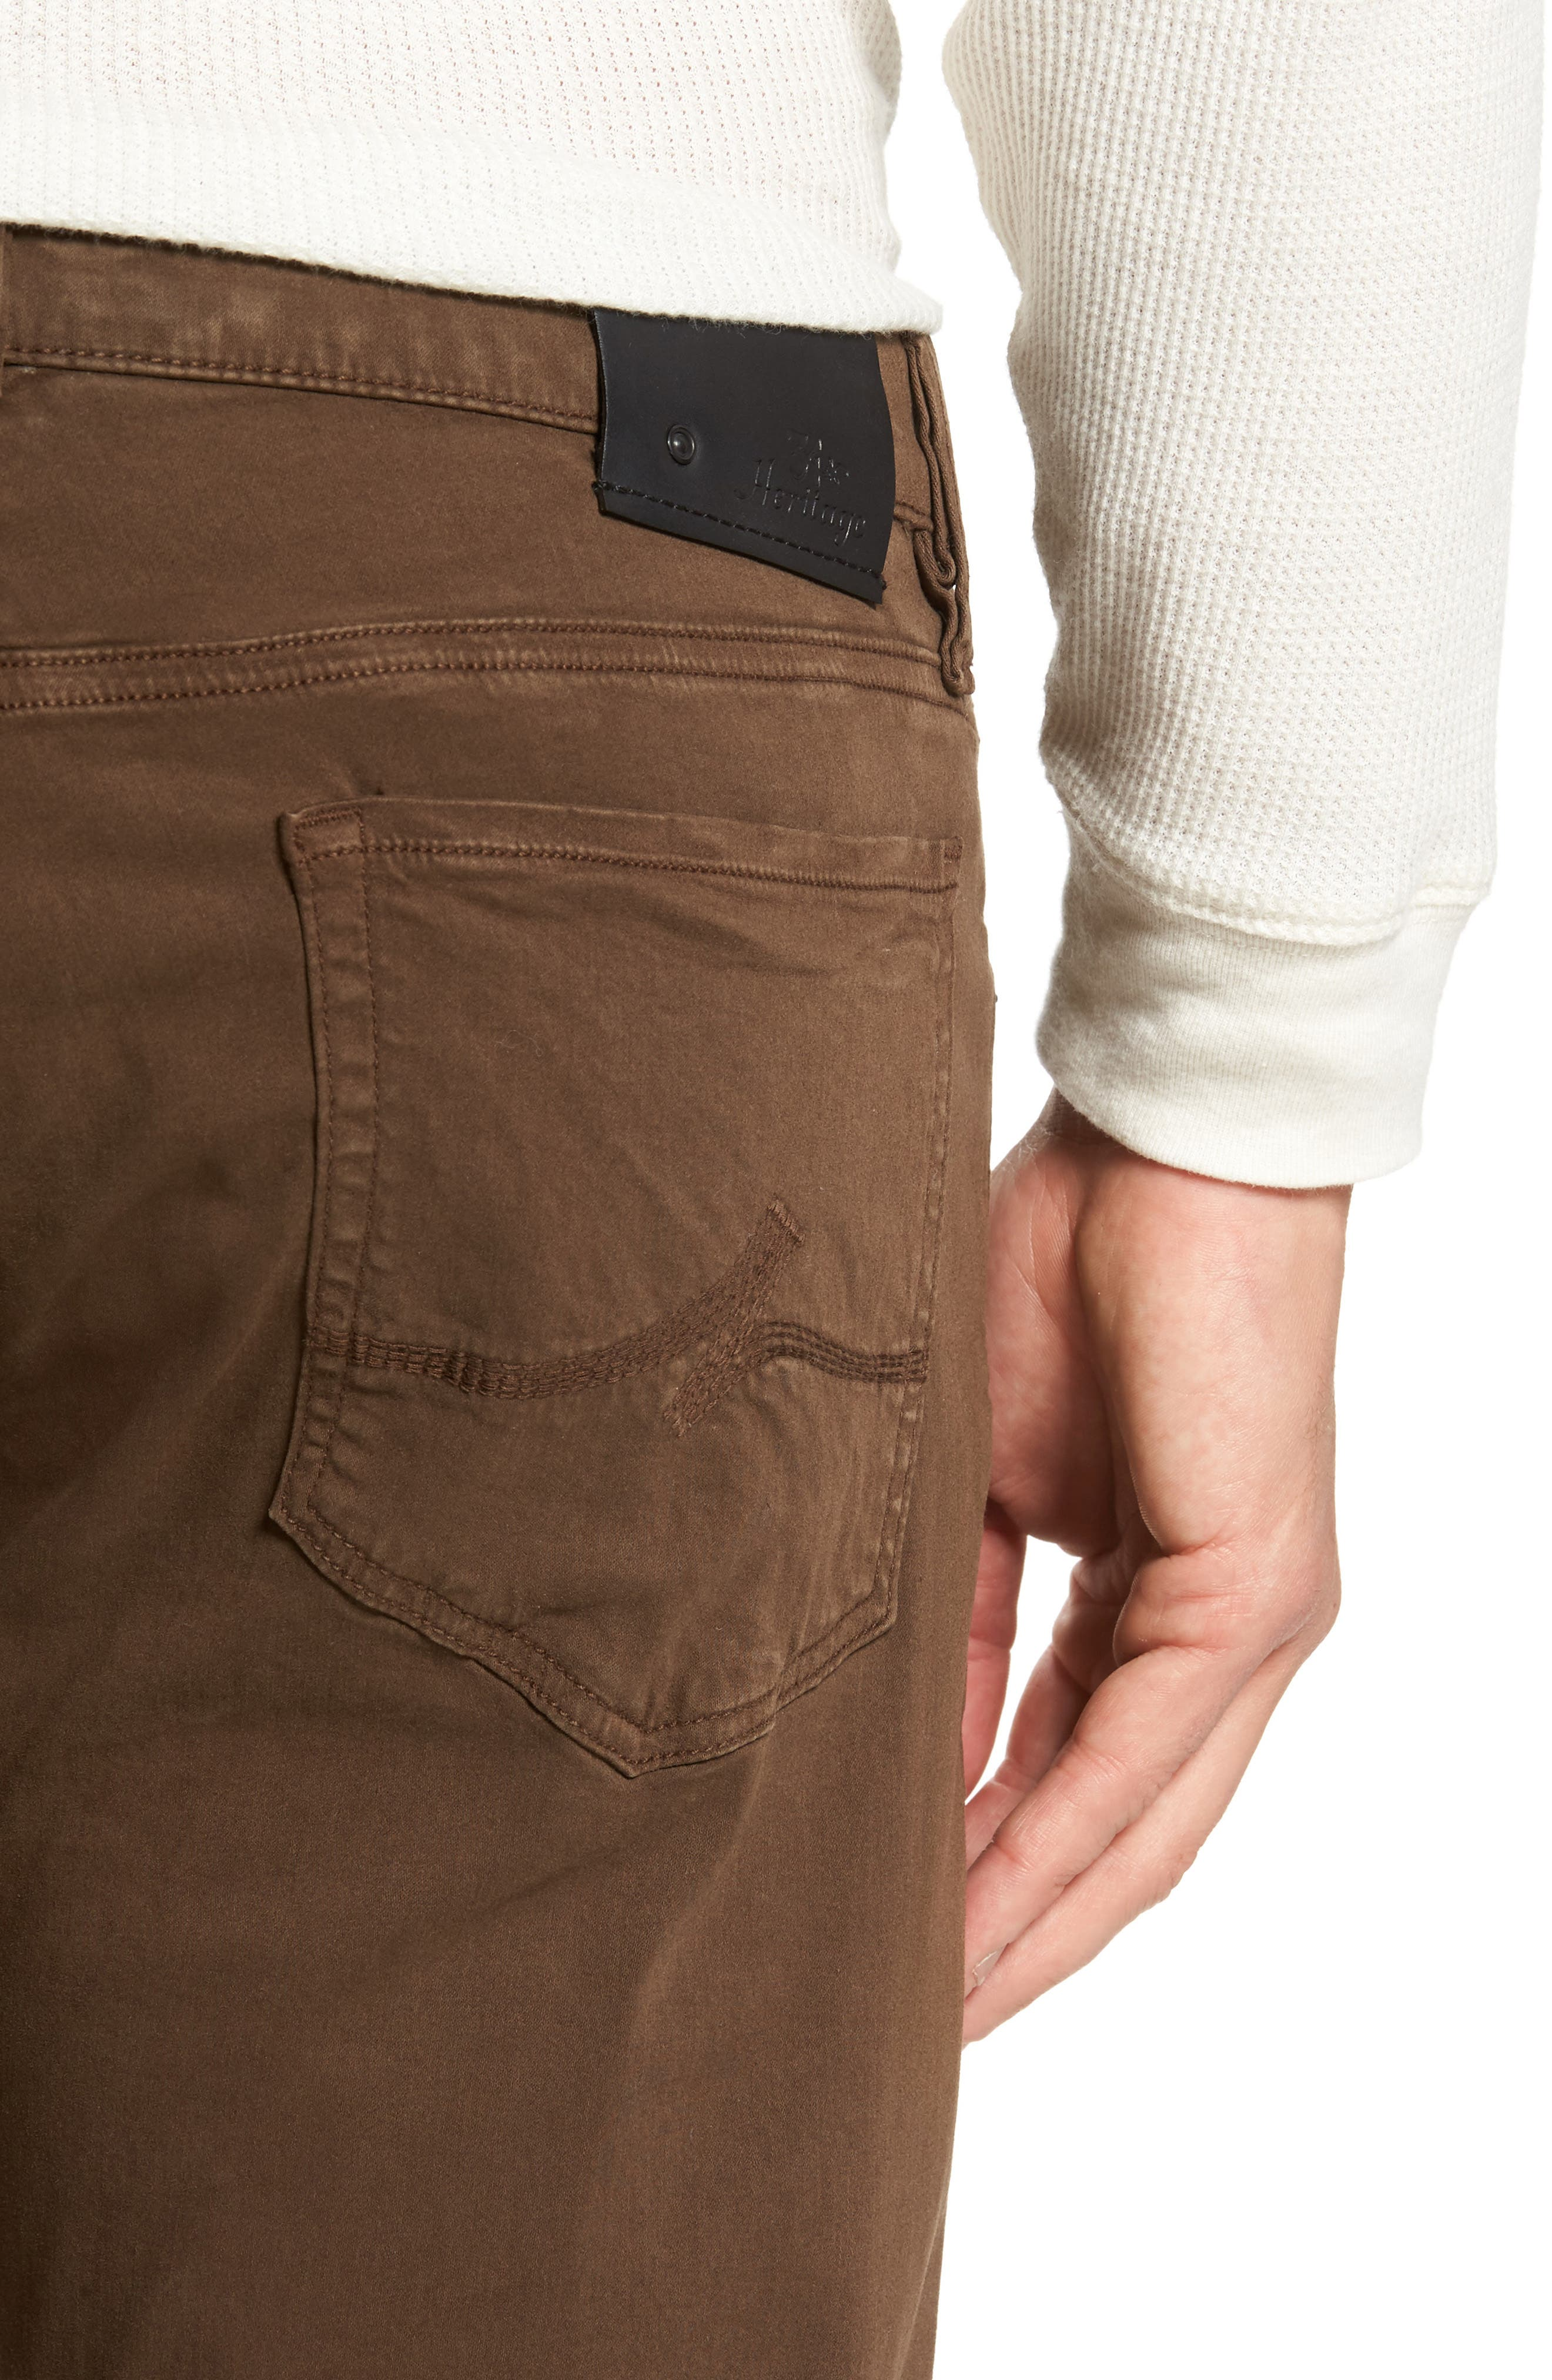 Courage Straight Leg Twill Pants,                             Alternate thumbnail 4, color,                             200